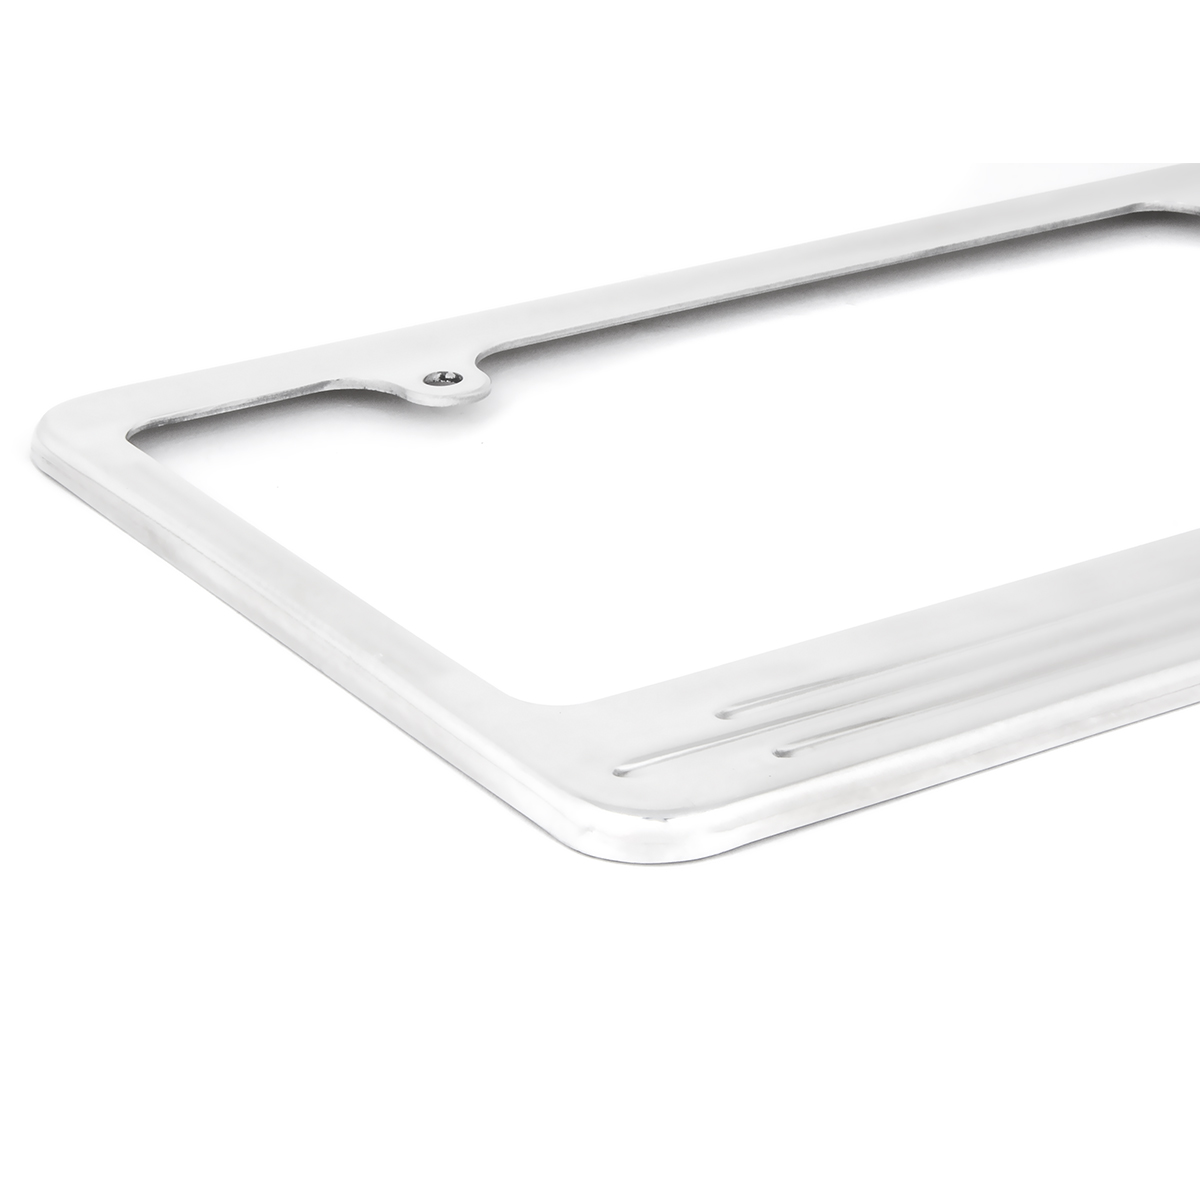 60473 Aluminum License Plate Frame with 2 Holes - Close Up View